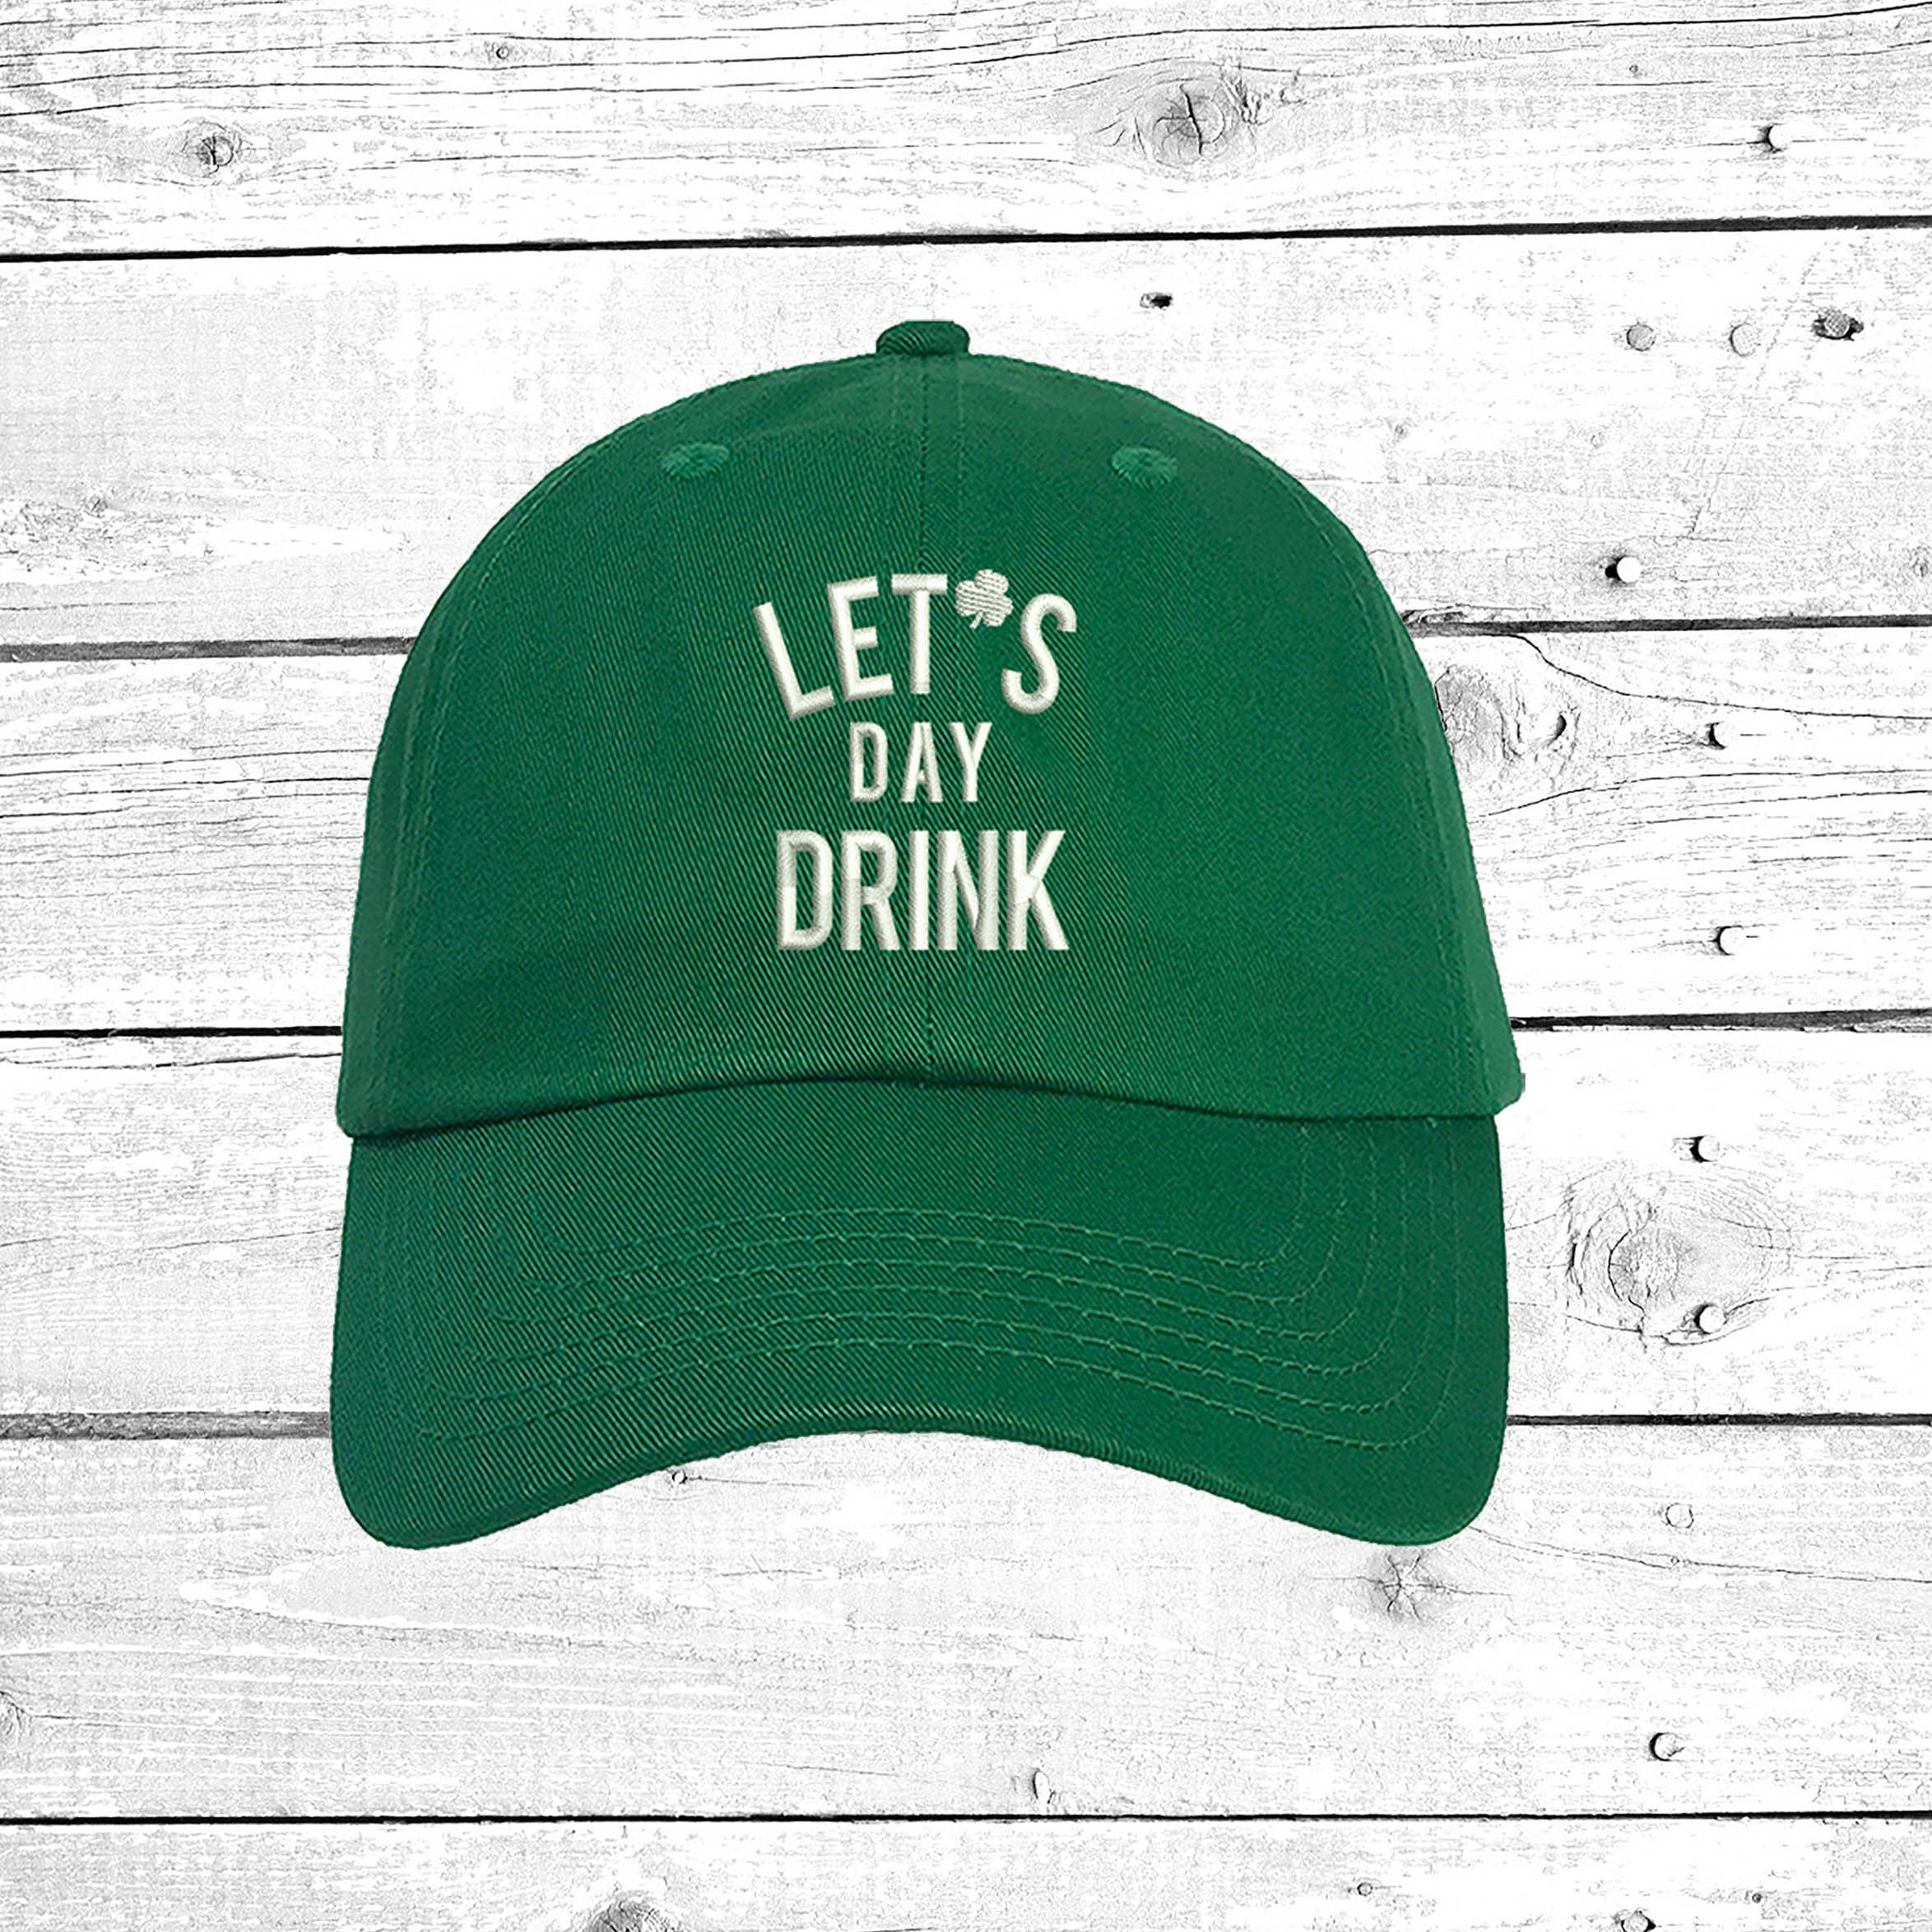 c1b7b2fc69b ... Caps Four Leaf Clover Shamrock Baseball Cap St Patrick s Day Gift.  gallery photo ...